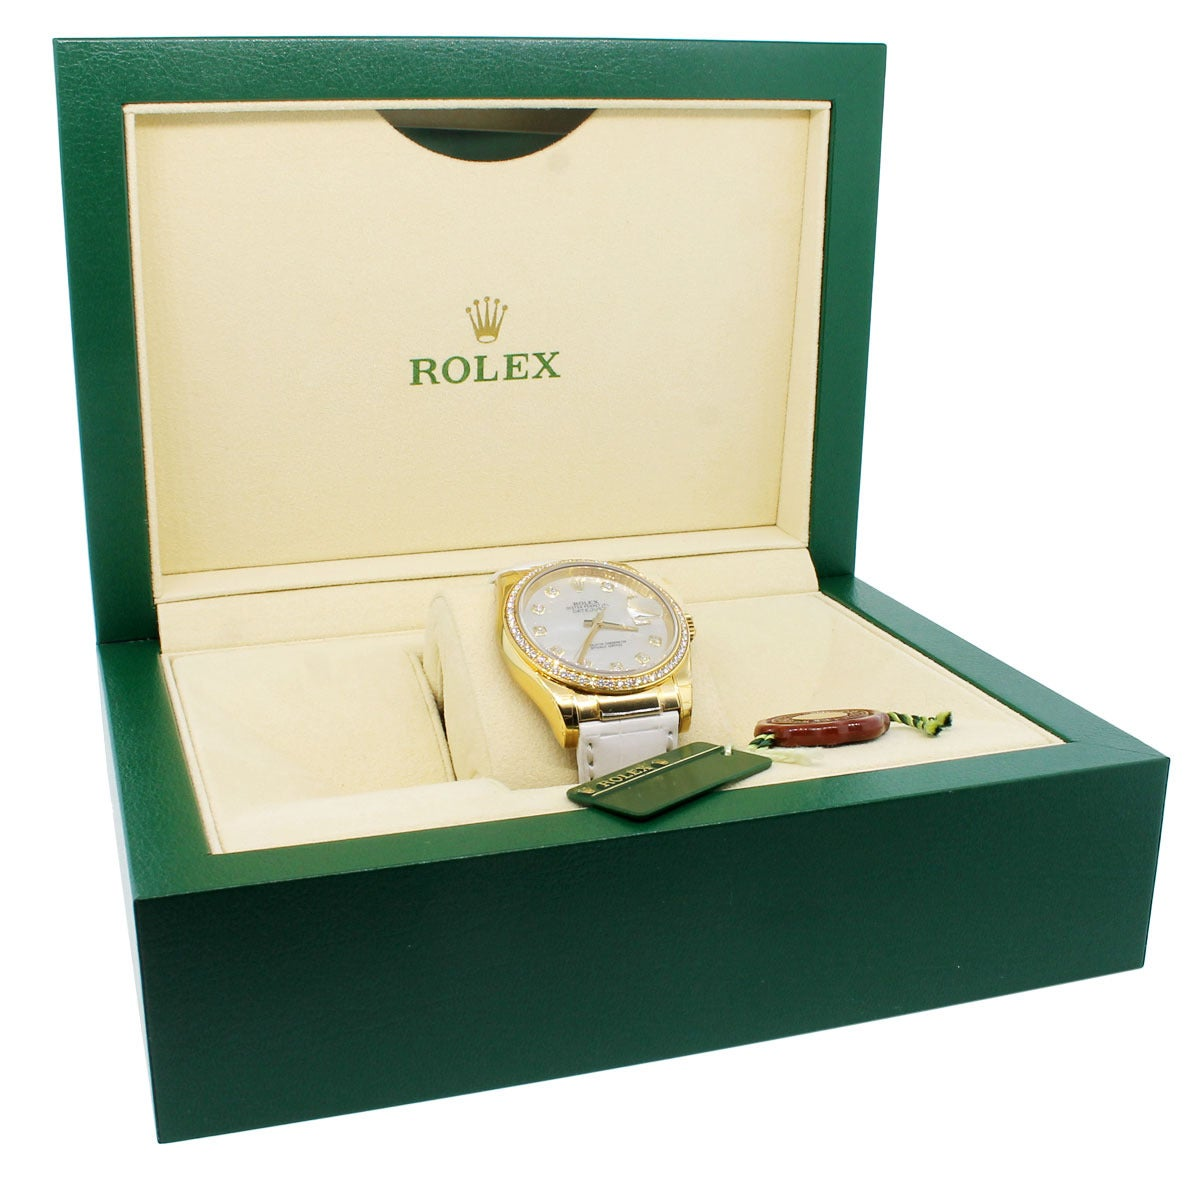 Rolex Yellow Gold Datejust Mother of Pearl Diamond Dial Wristwatch Ref 116188 For Sale 3